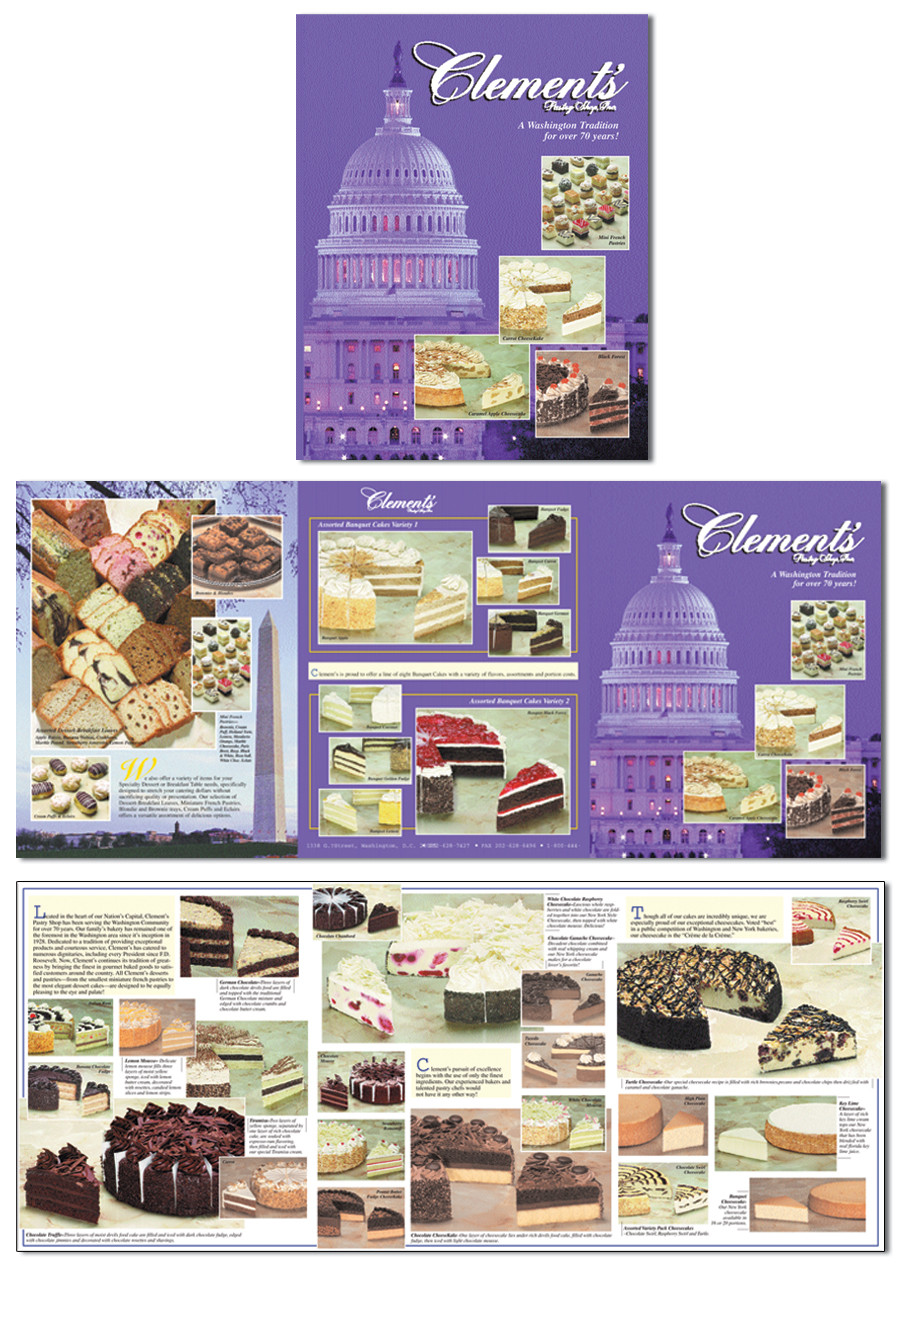 Clements Pastry Shop Product Brochure